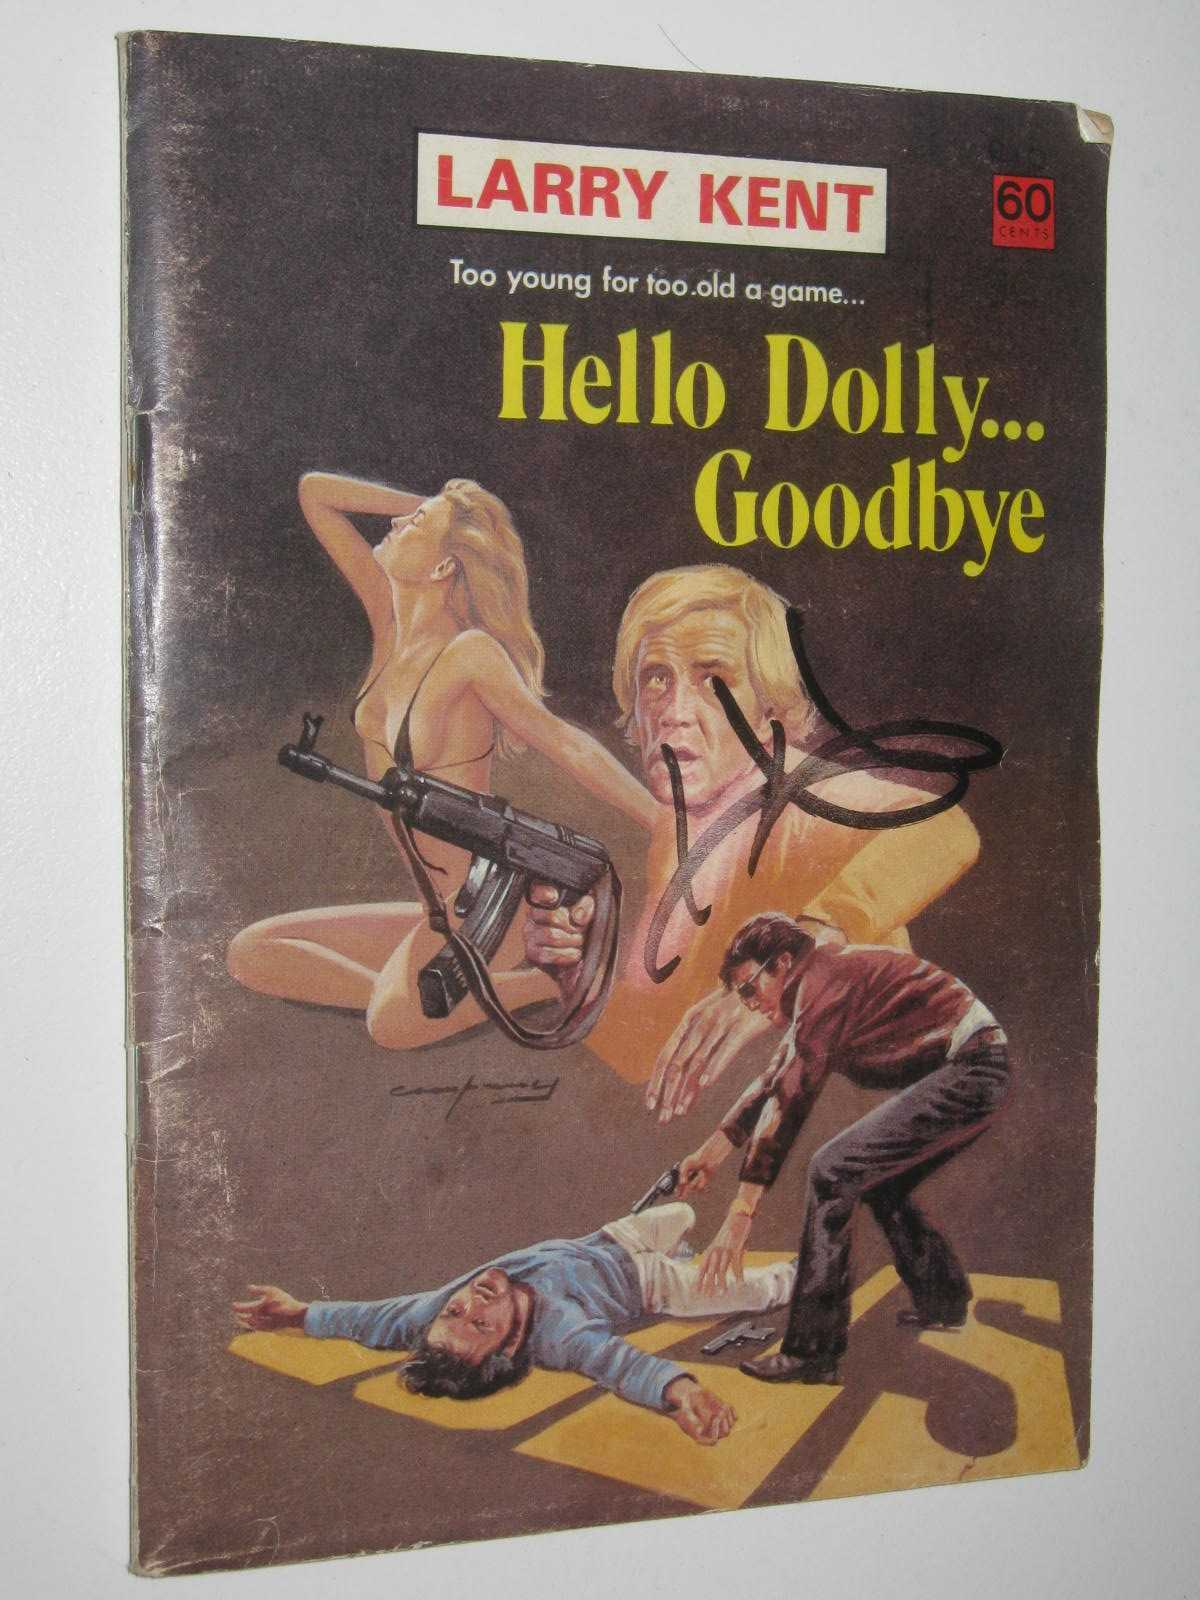 Image for Hello Dolly ... Goodbye - Larry Kent Series #794